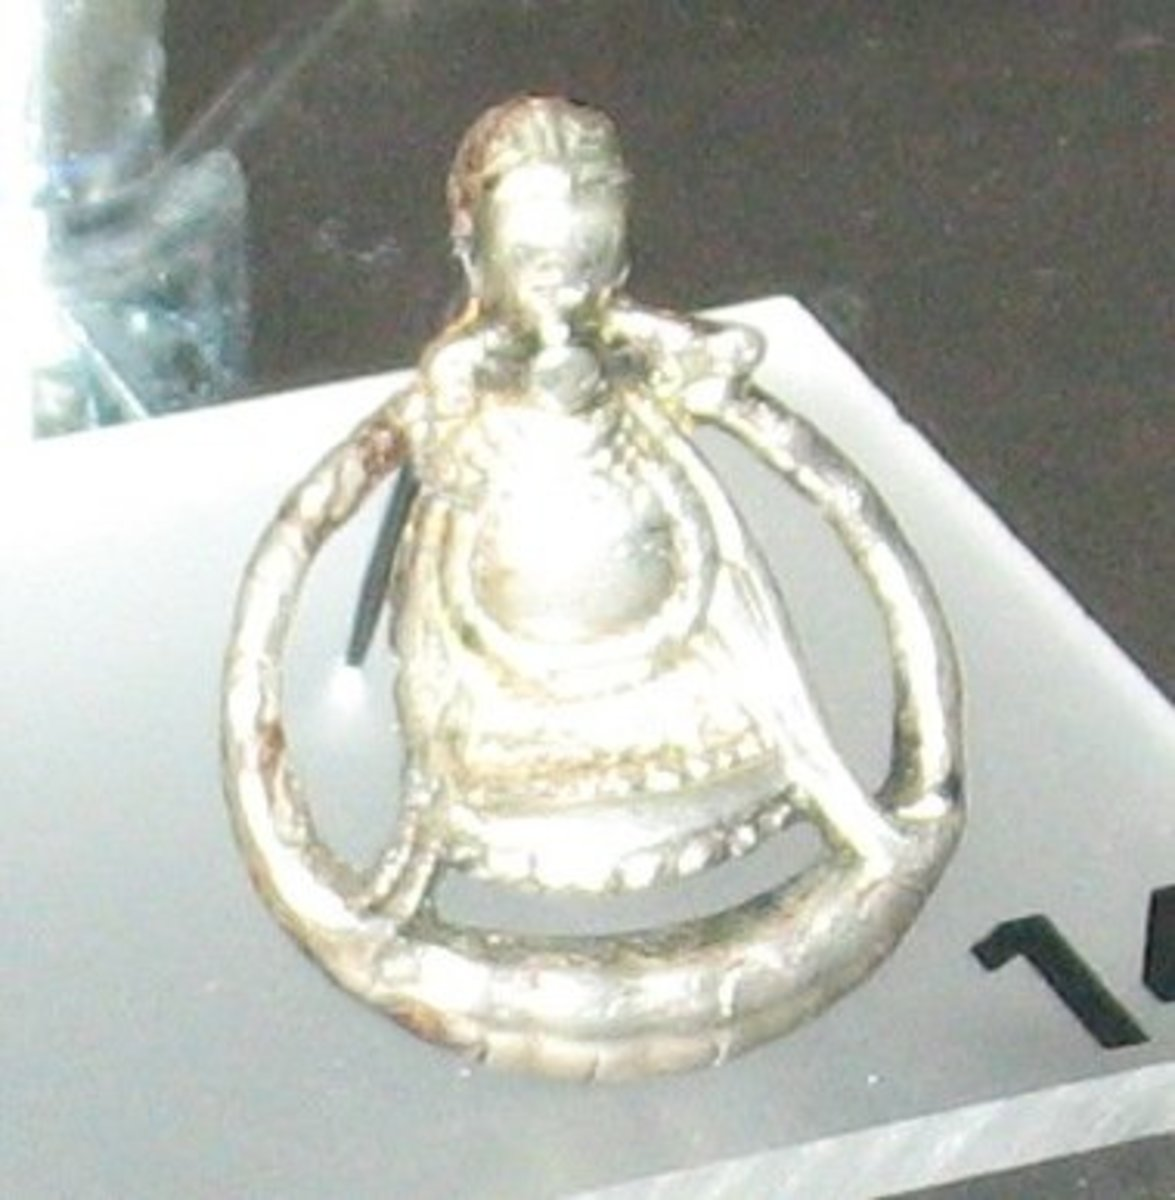 A Viking period silver amulet of the Norse goddess Freyja found in Aska in Hagebyhöga parish, Aska hundred, Vadstena municipality, Östergötland, Sweden.